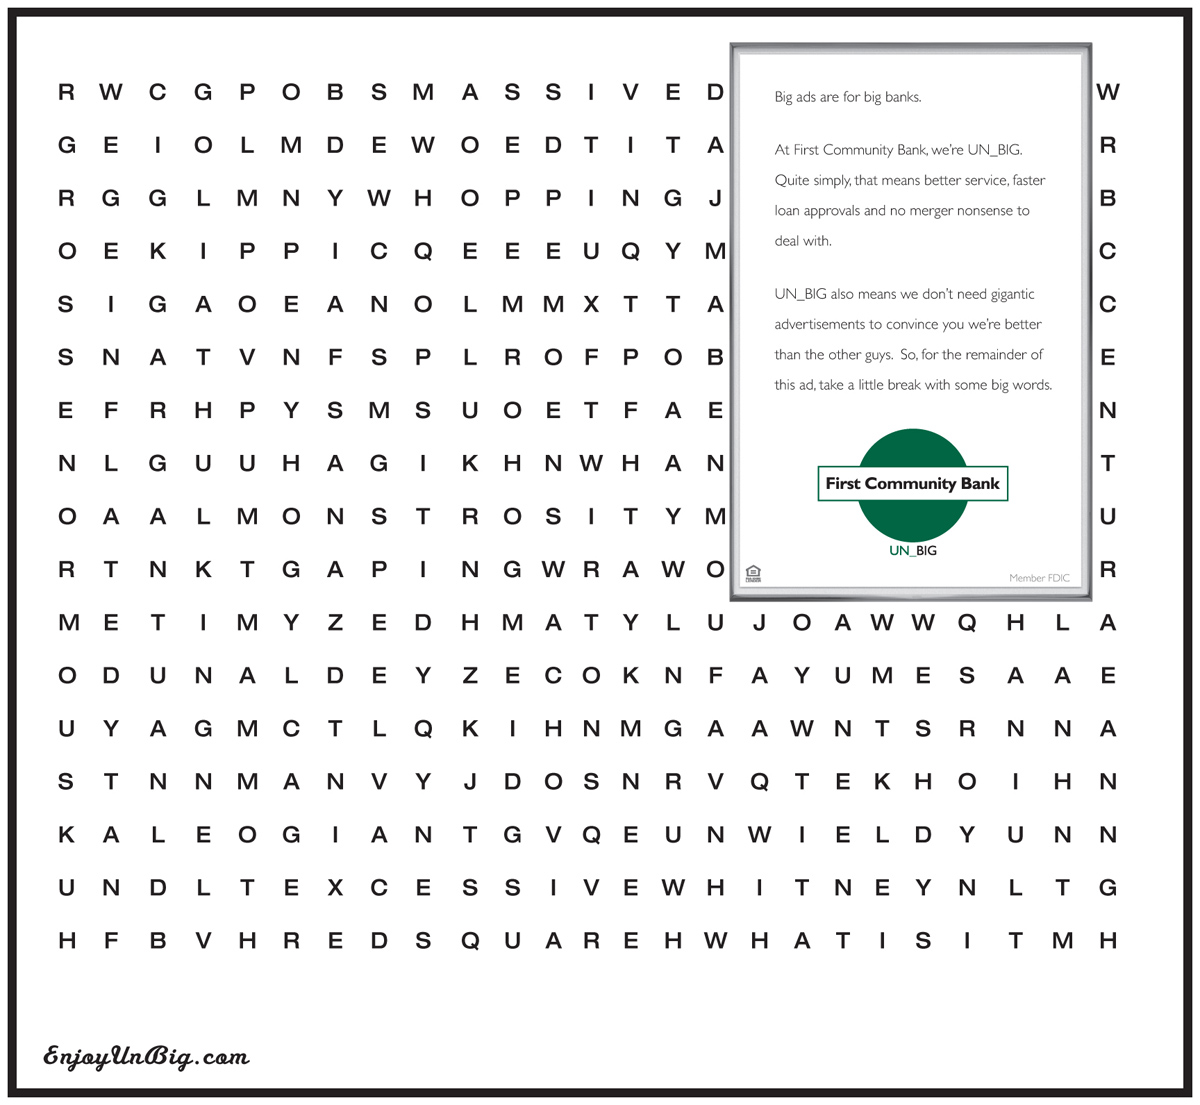 Print Advert By Word Search